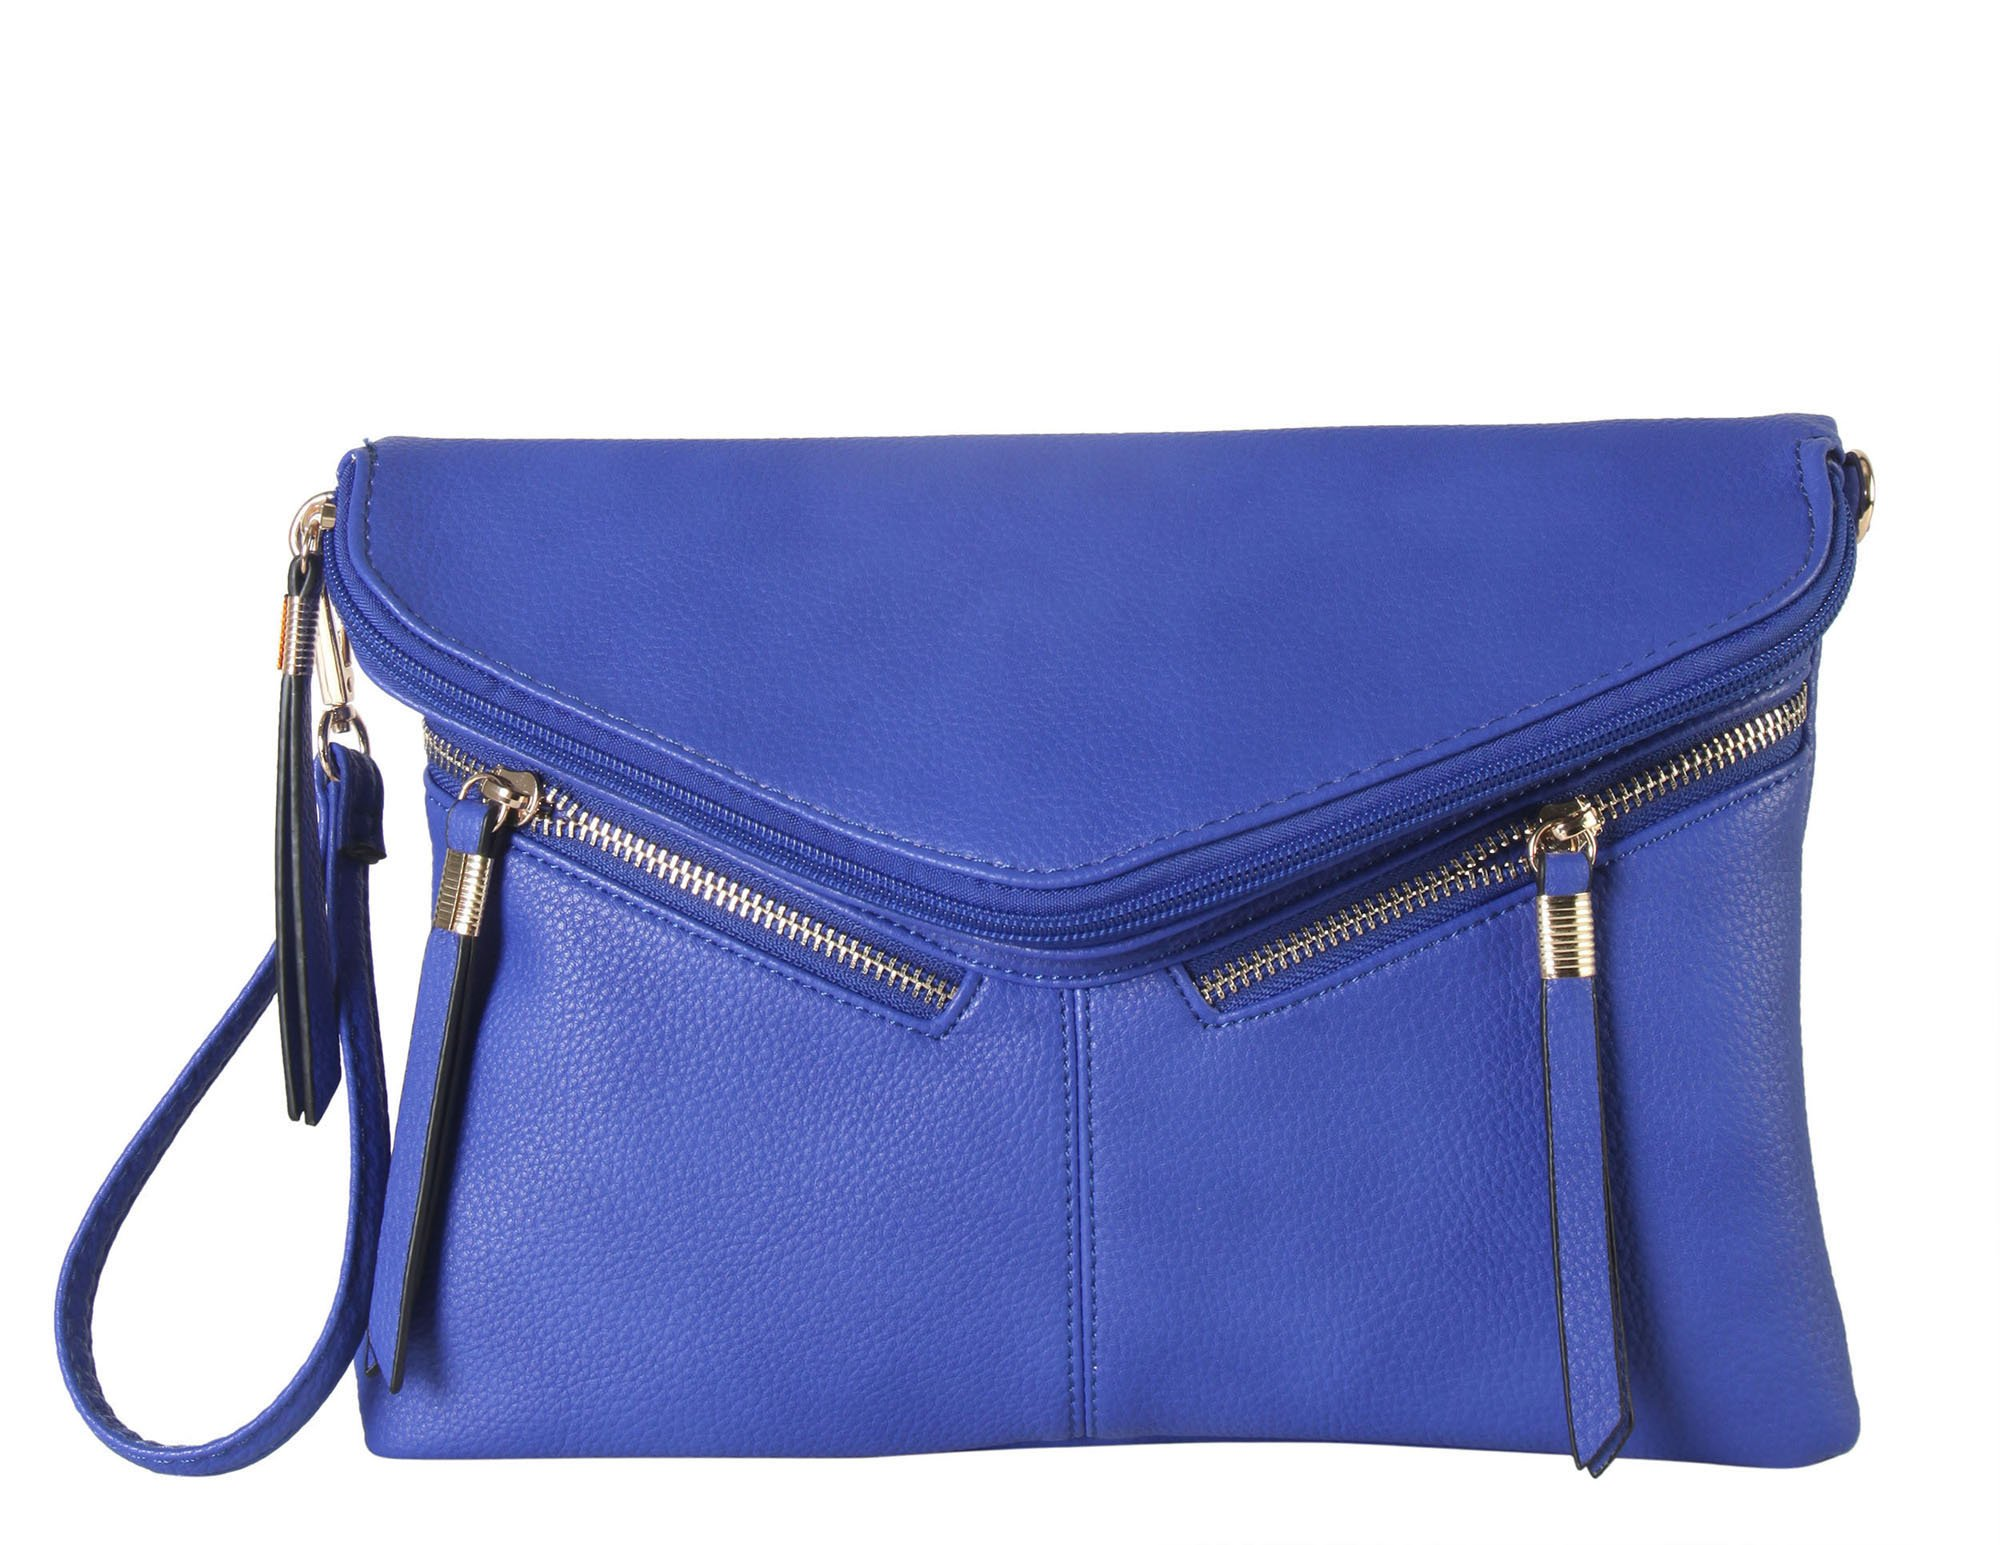 Diophy PU Leather Front Double Zipper Décor Bifold Clutch Accented with Removable Wristlet Strap Womens Purse Handbag SD-6027